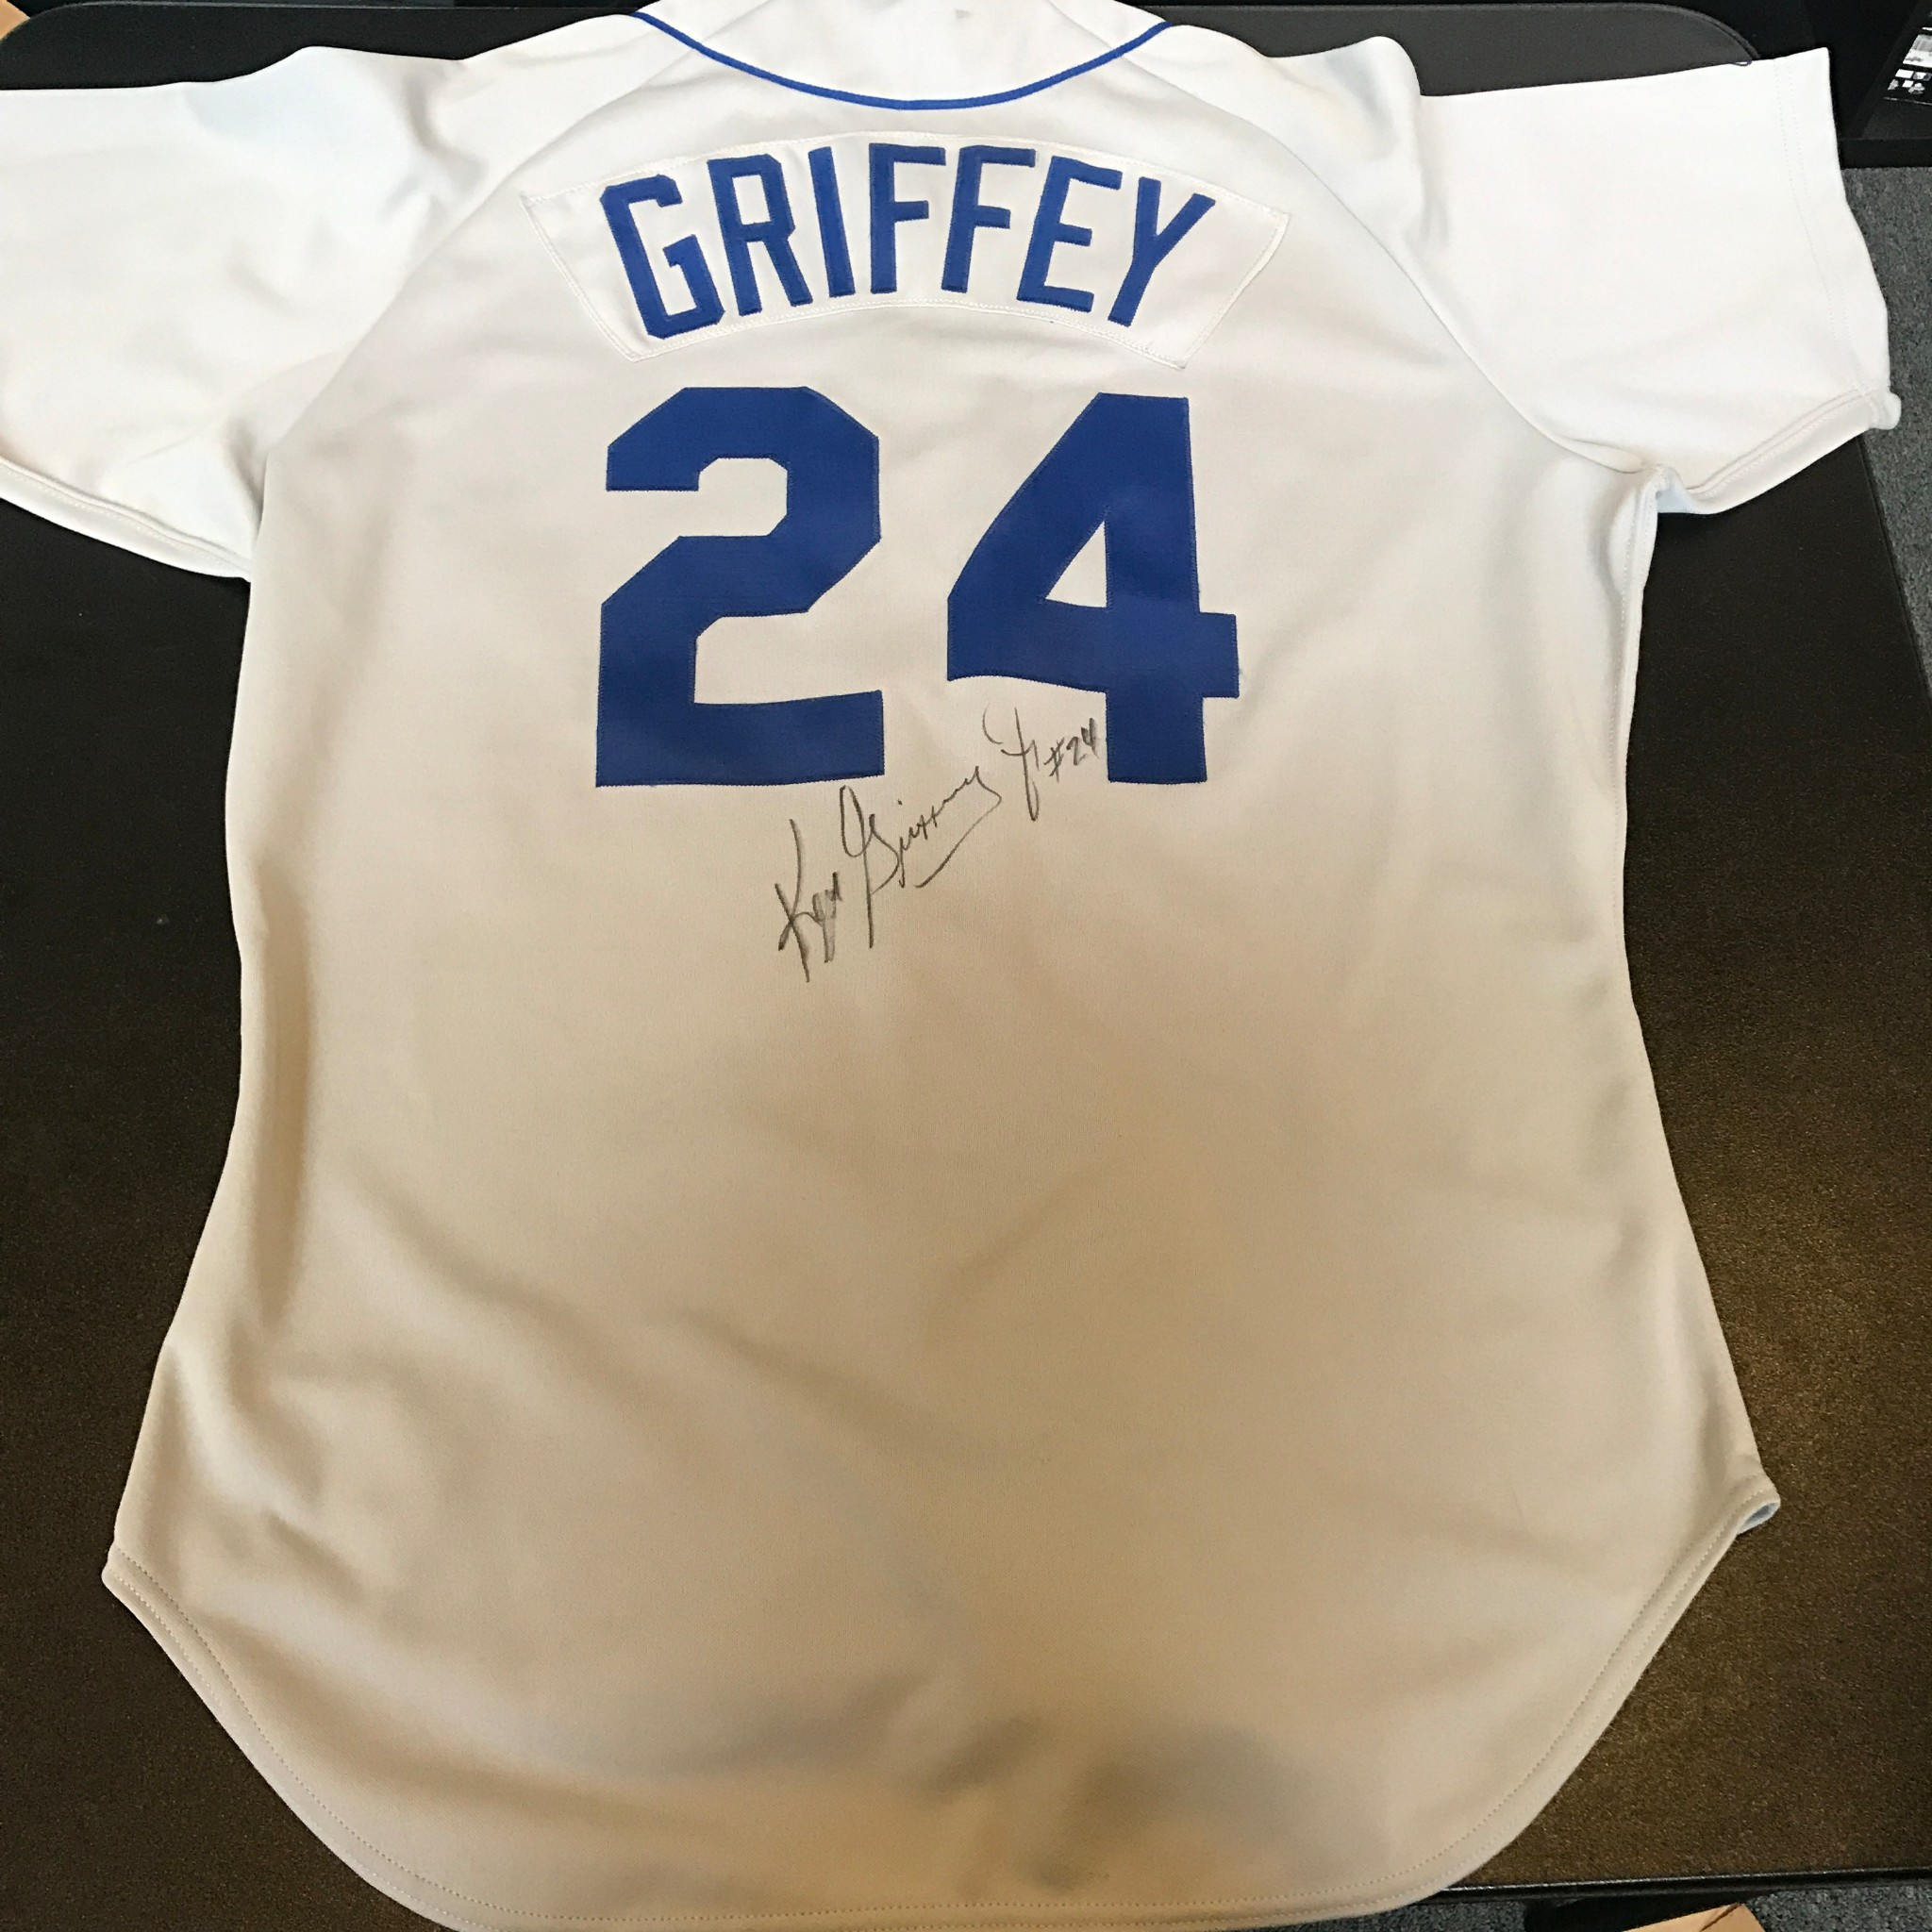 purchase cheap d8996 5a3da Details about 1991 Ken Griffey Jr. Signed Game Used Seattle Mariners Jersey  With JSA COA